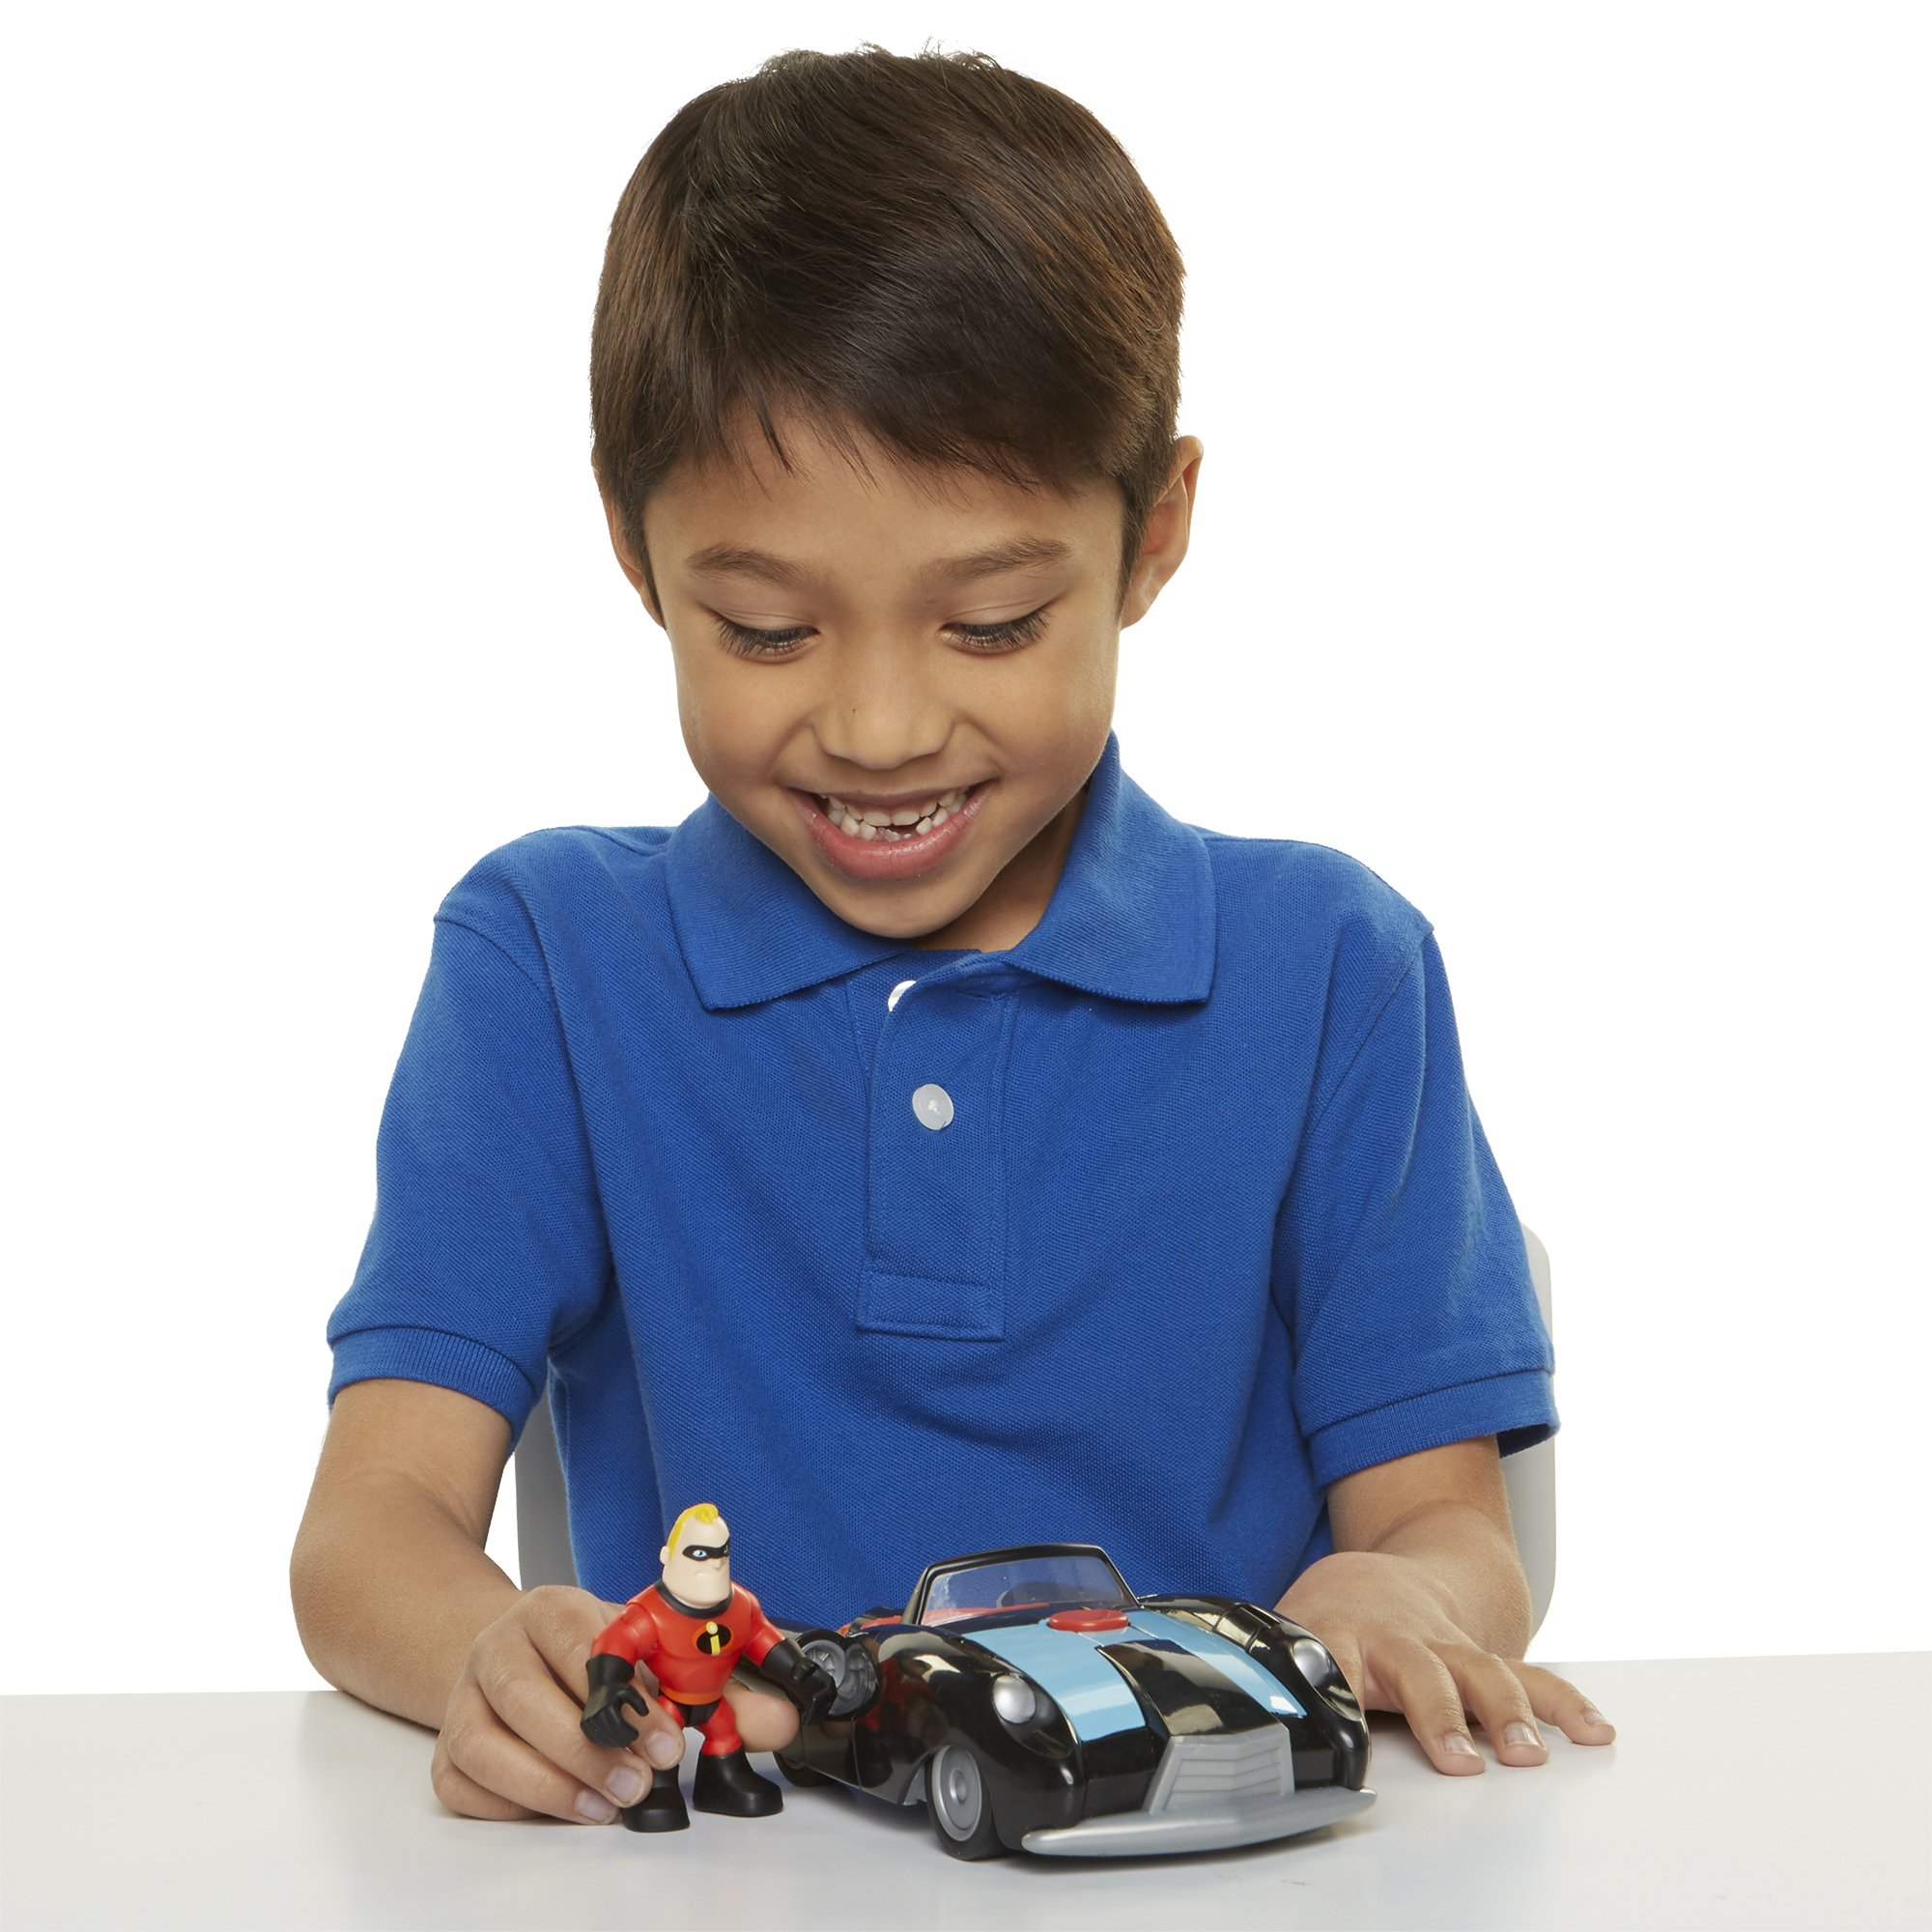 The Incredibles 2 Incredibile Car & Mr. Incredible Action Figure 2-Piece Set, Black Car and Red Mr. Incredible Figure, Medium by The Incredibles 2 (Image #9)